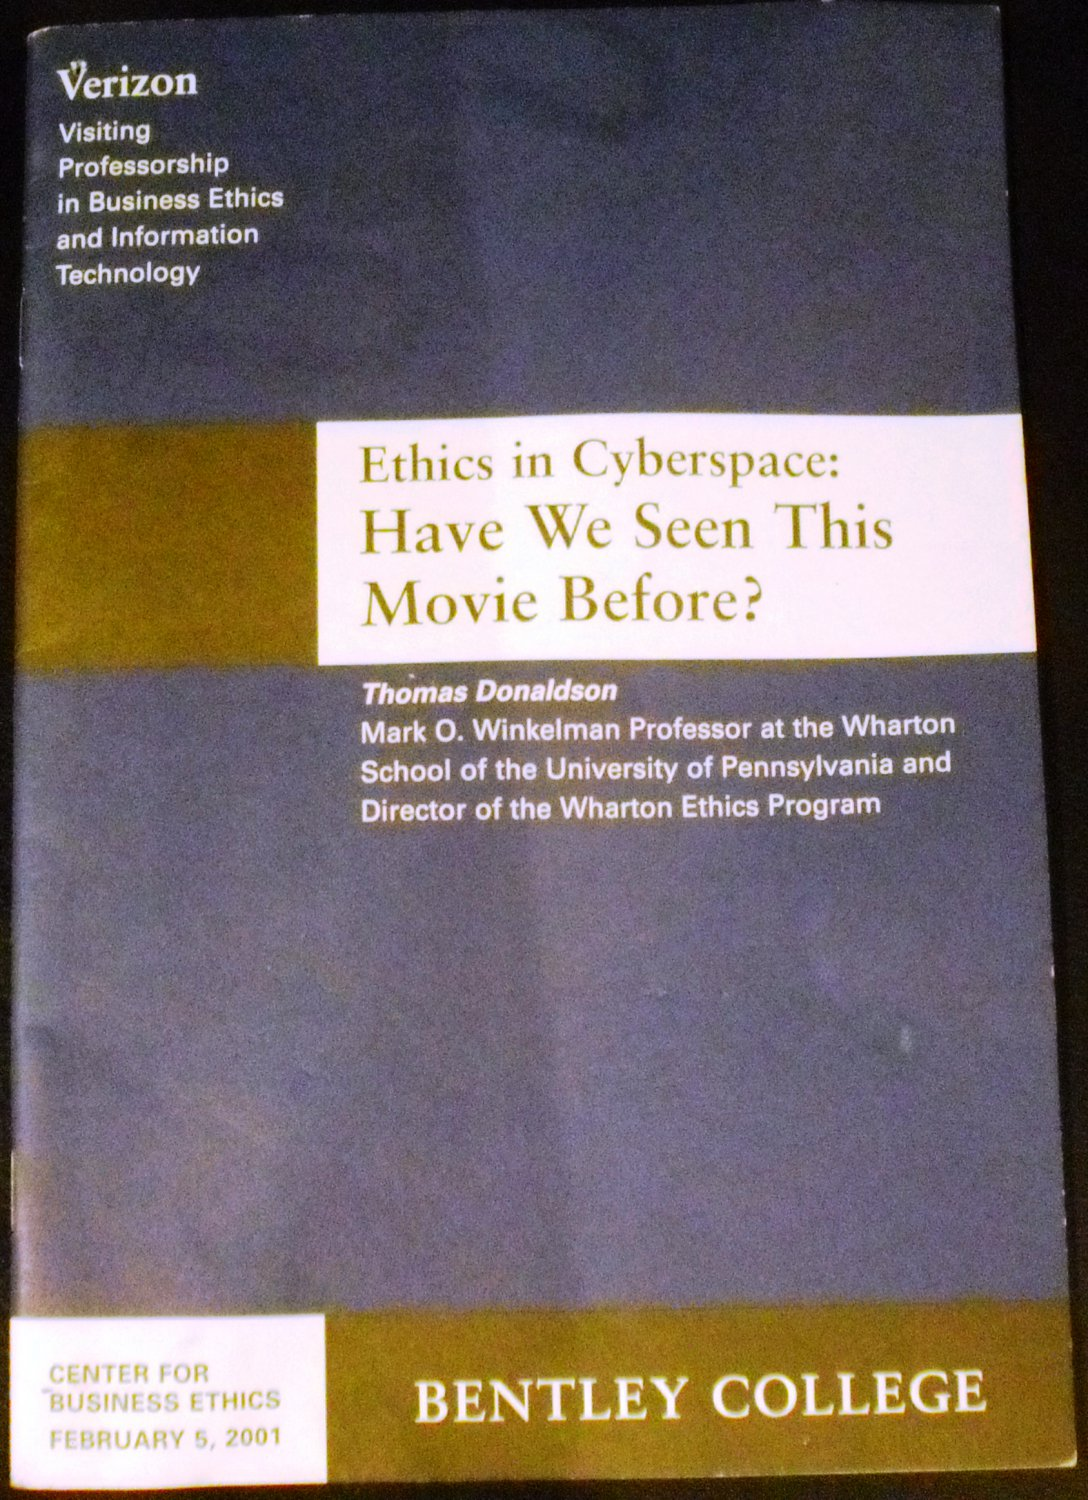 Ethics in Cyberspace: Have We Seen This Movie Before? by  Thomas Donaldson (Author)